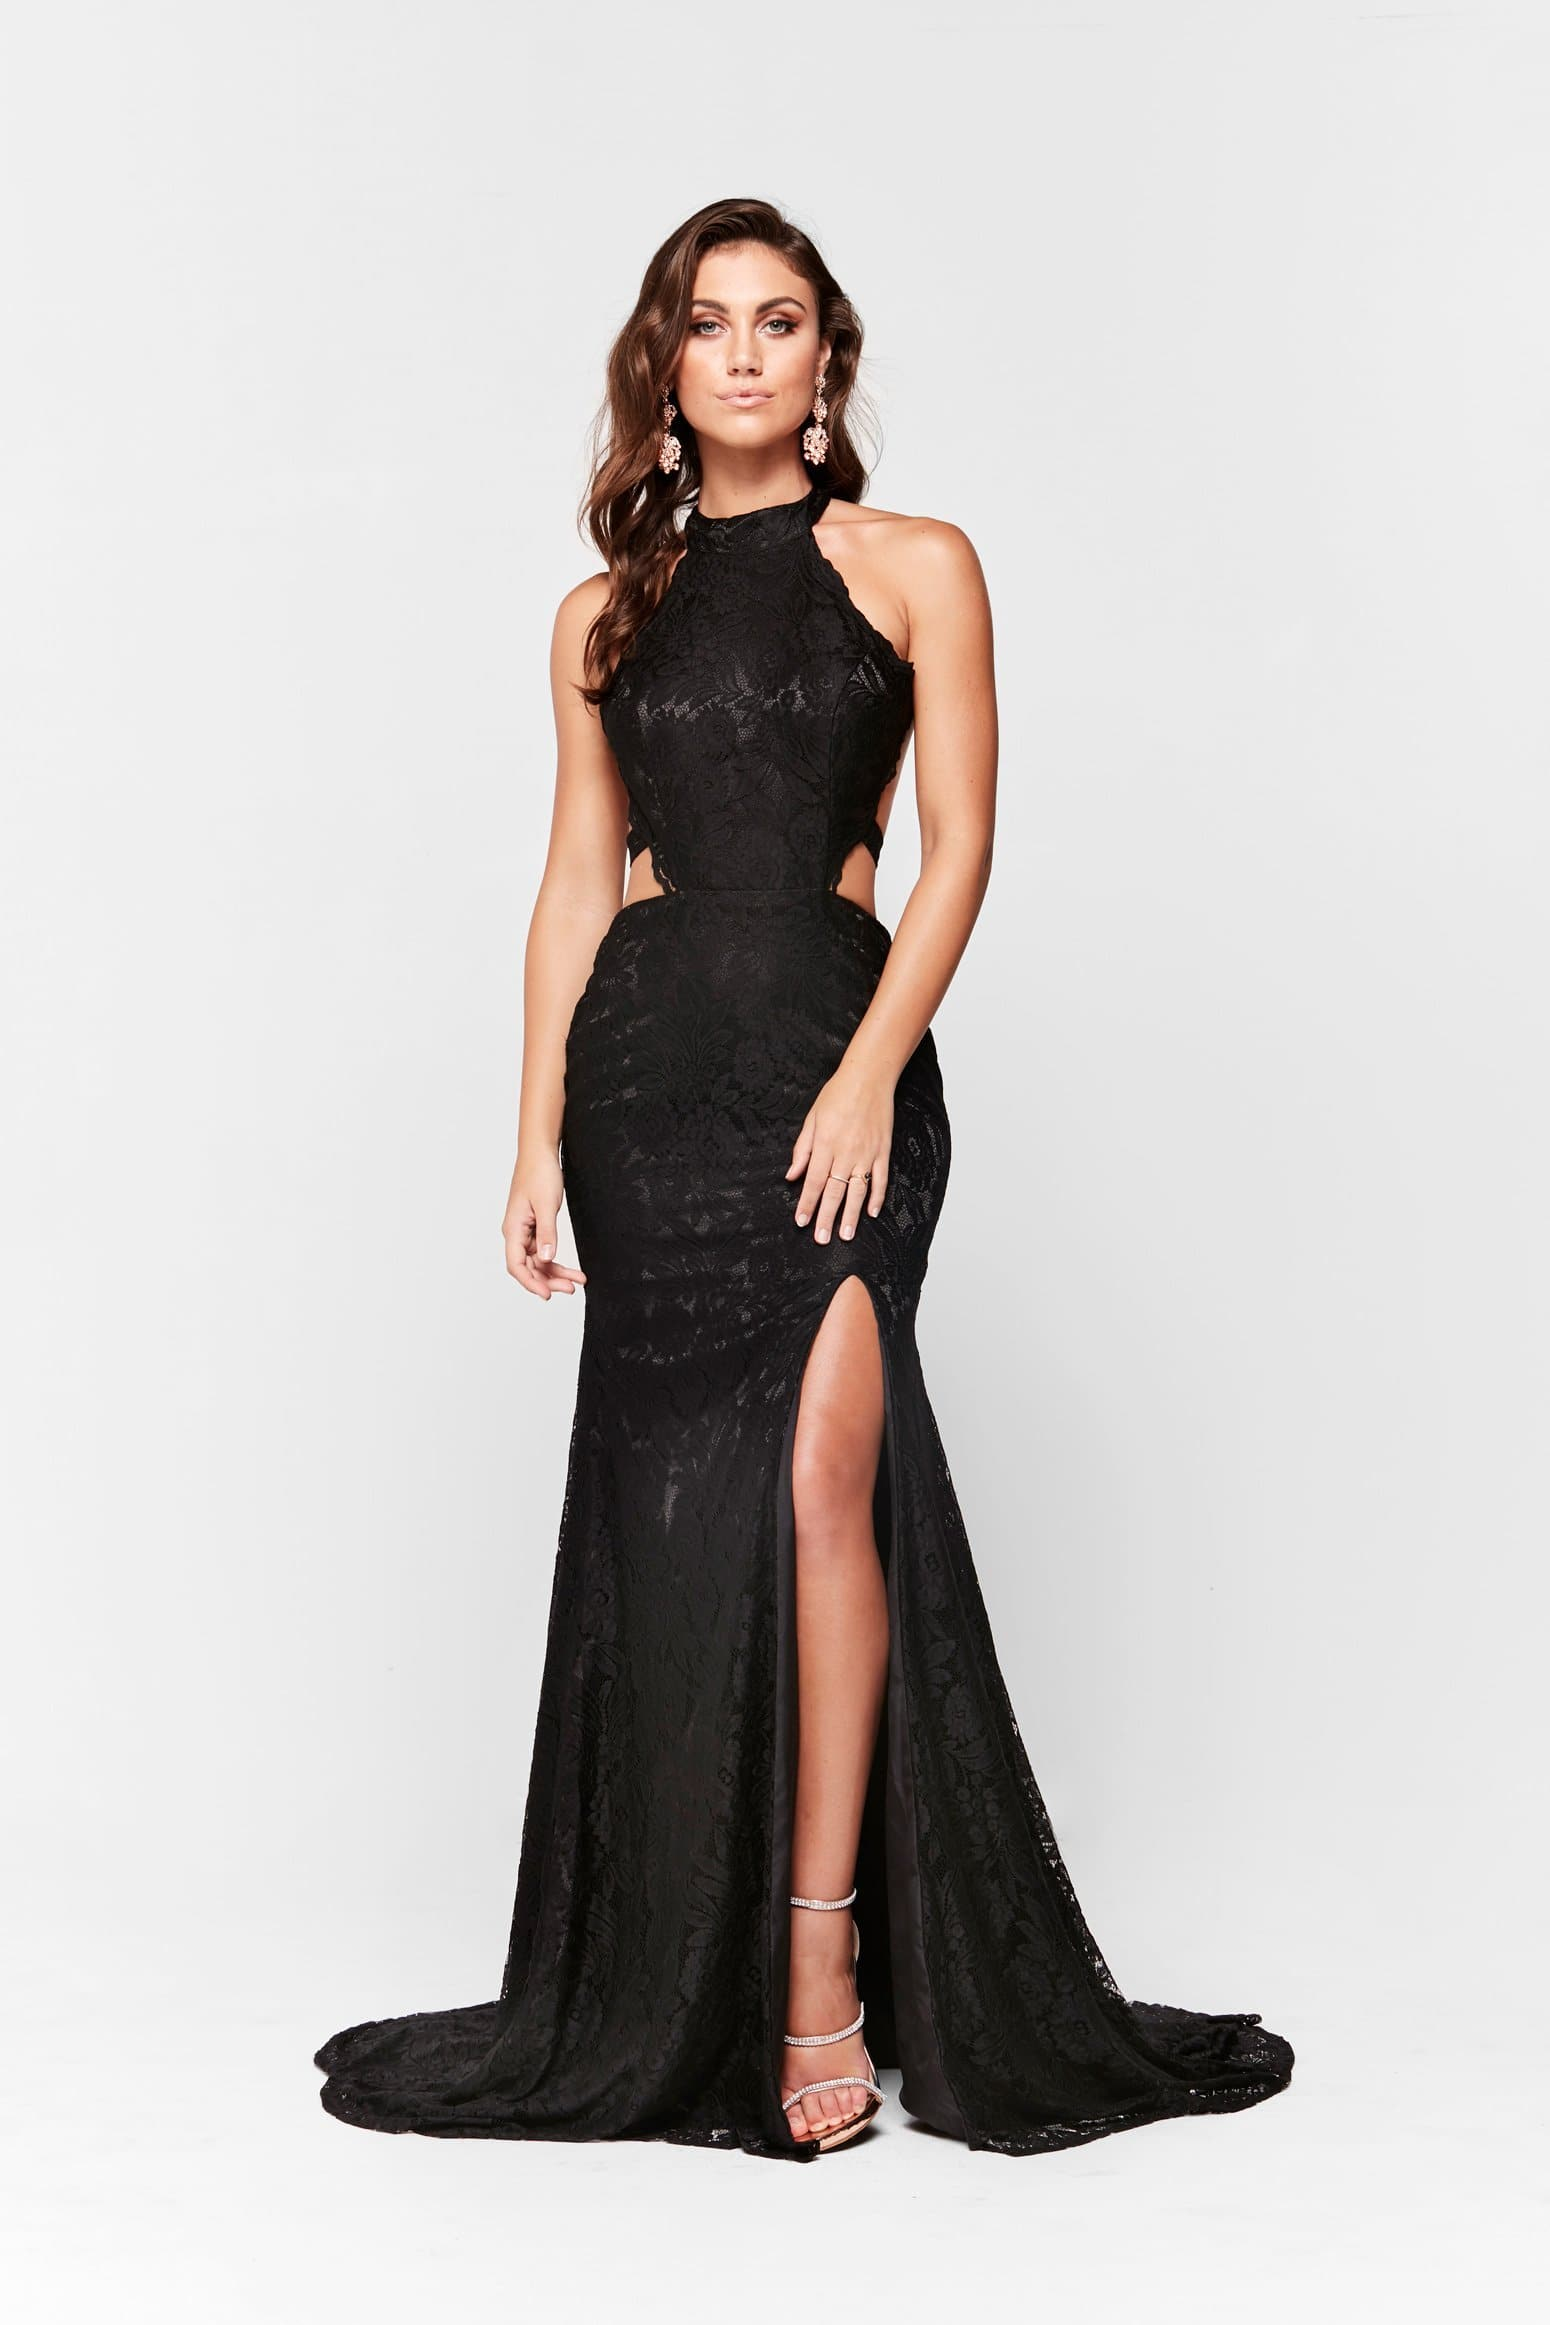 A&N Amber - Black Lace Halter Gown with Cut Out Sides and Front Slit